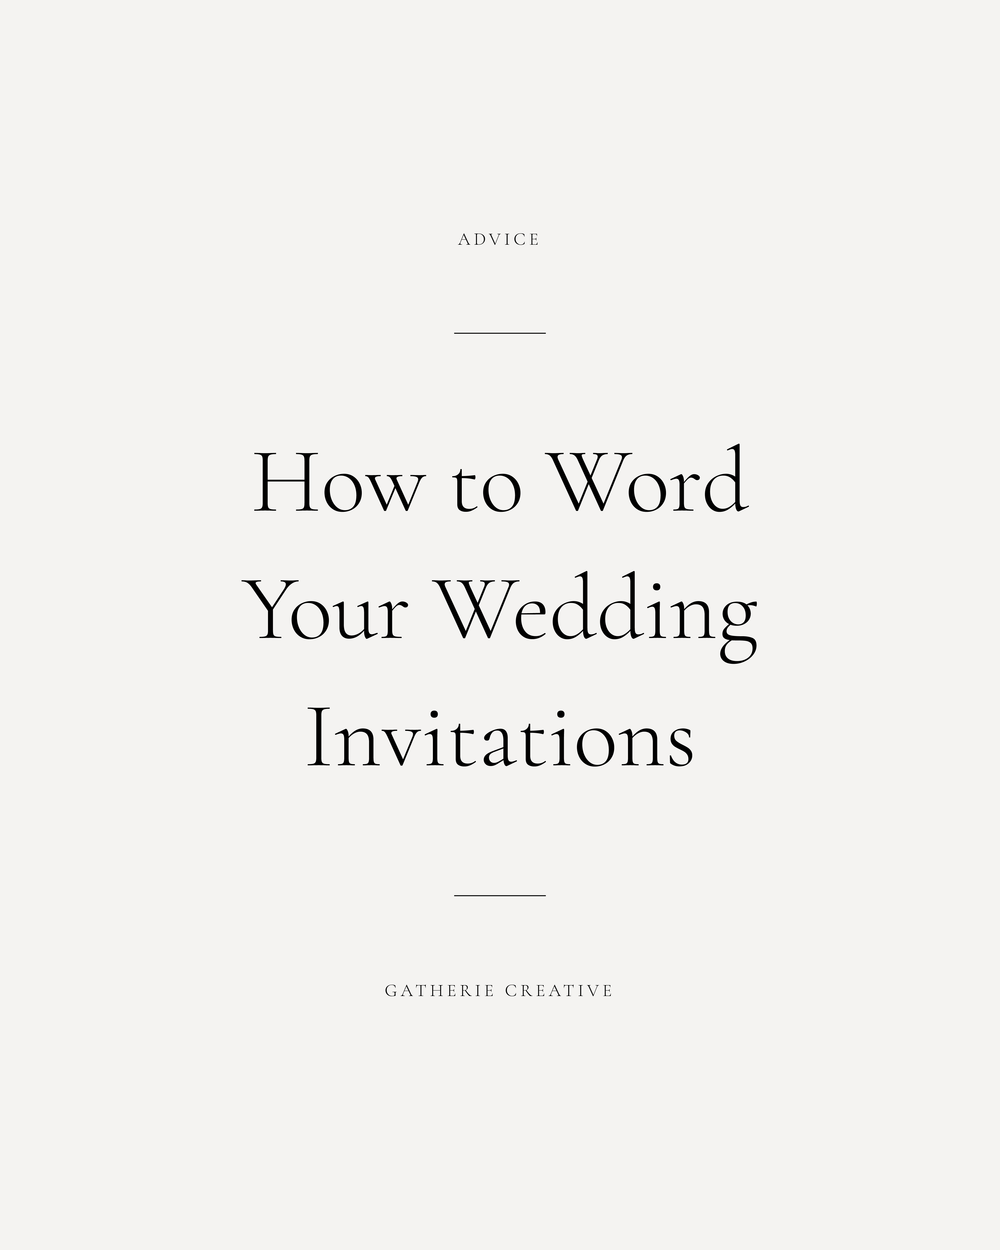 Gatherie Creative — WEDDING INVITATION WORDING ETIQUETTE